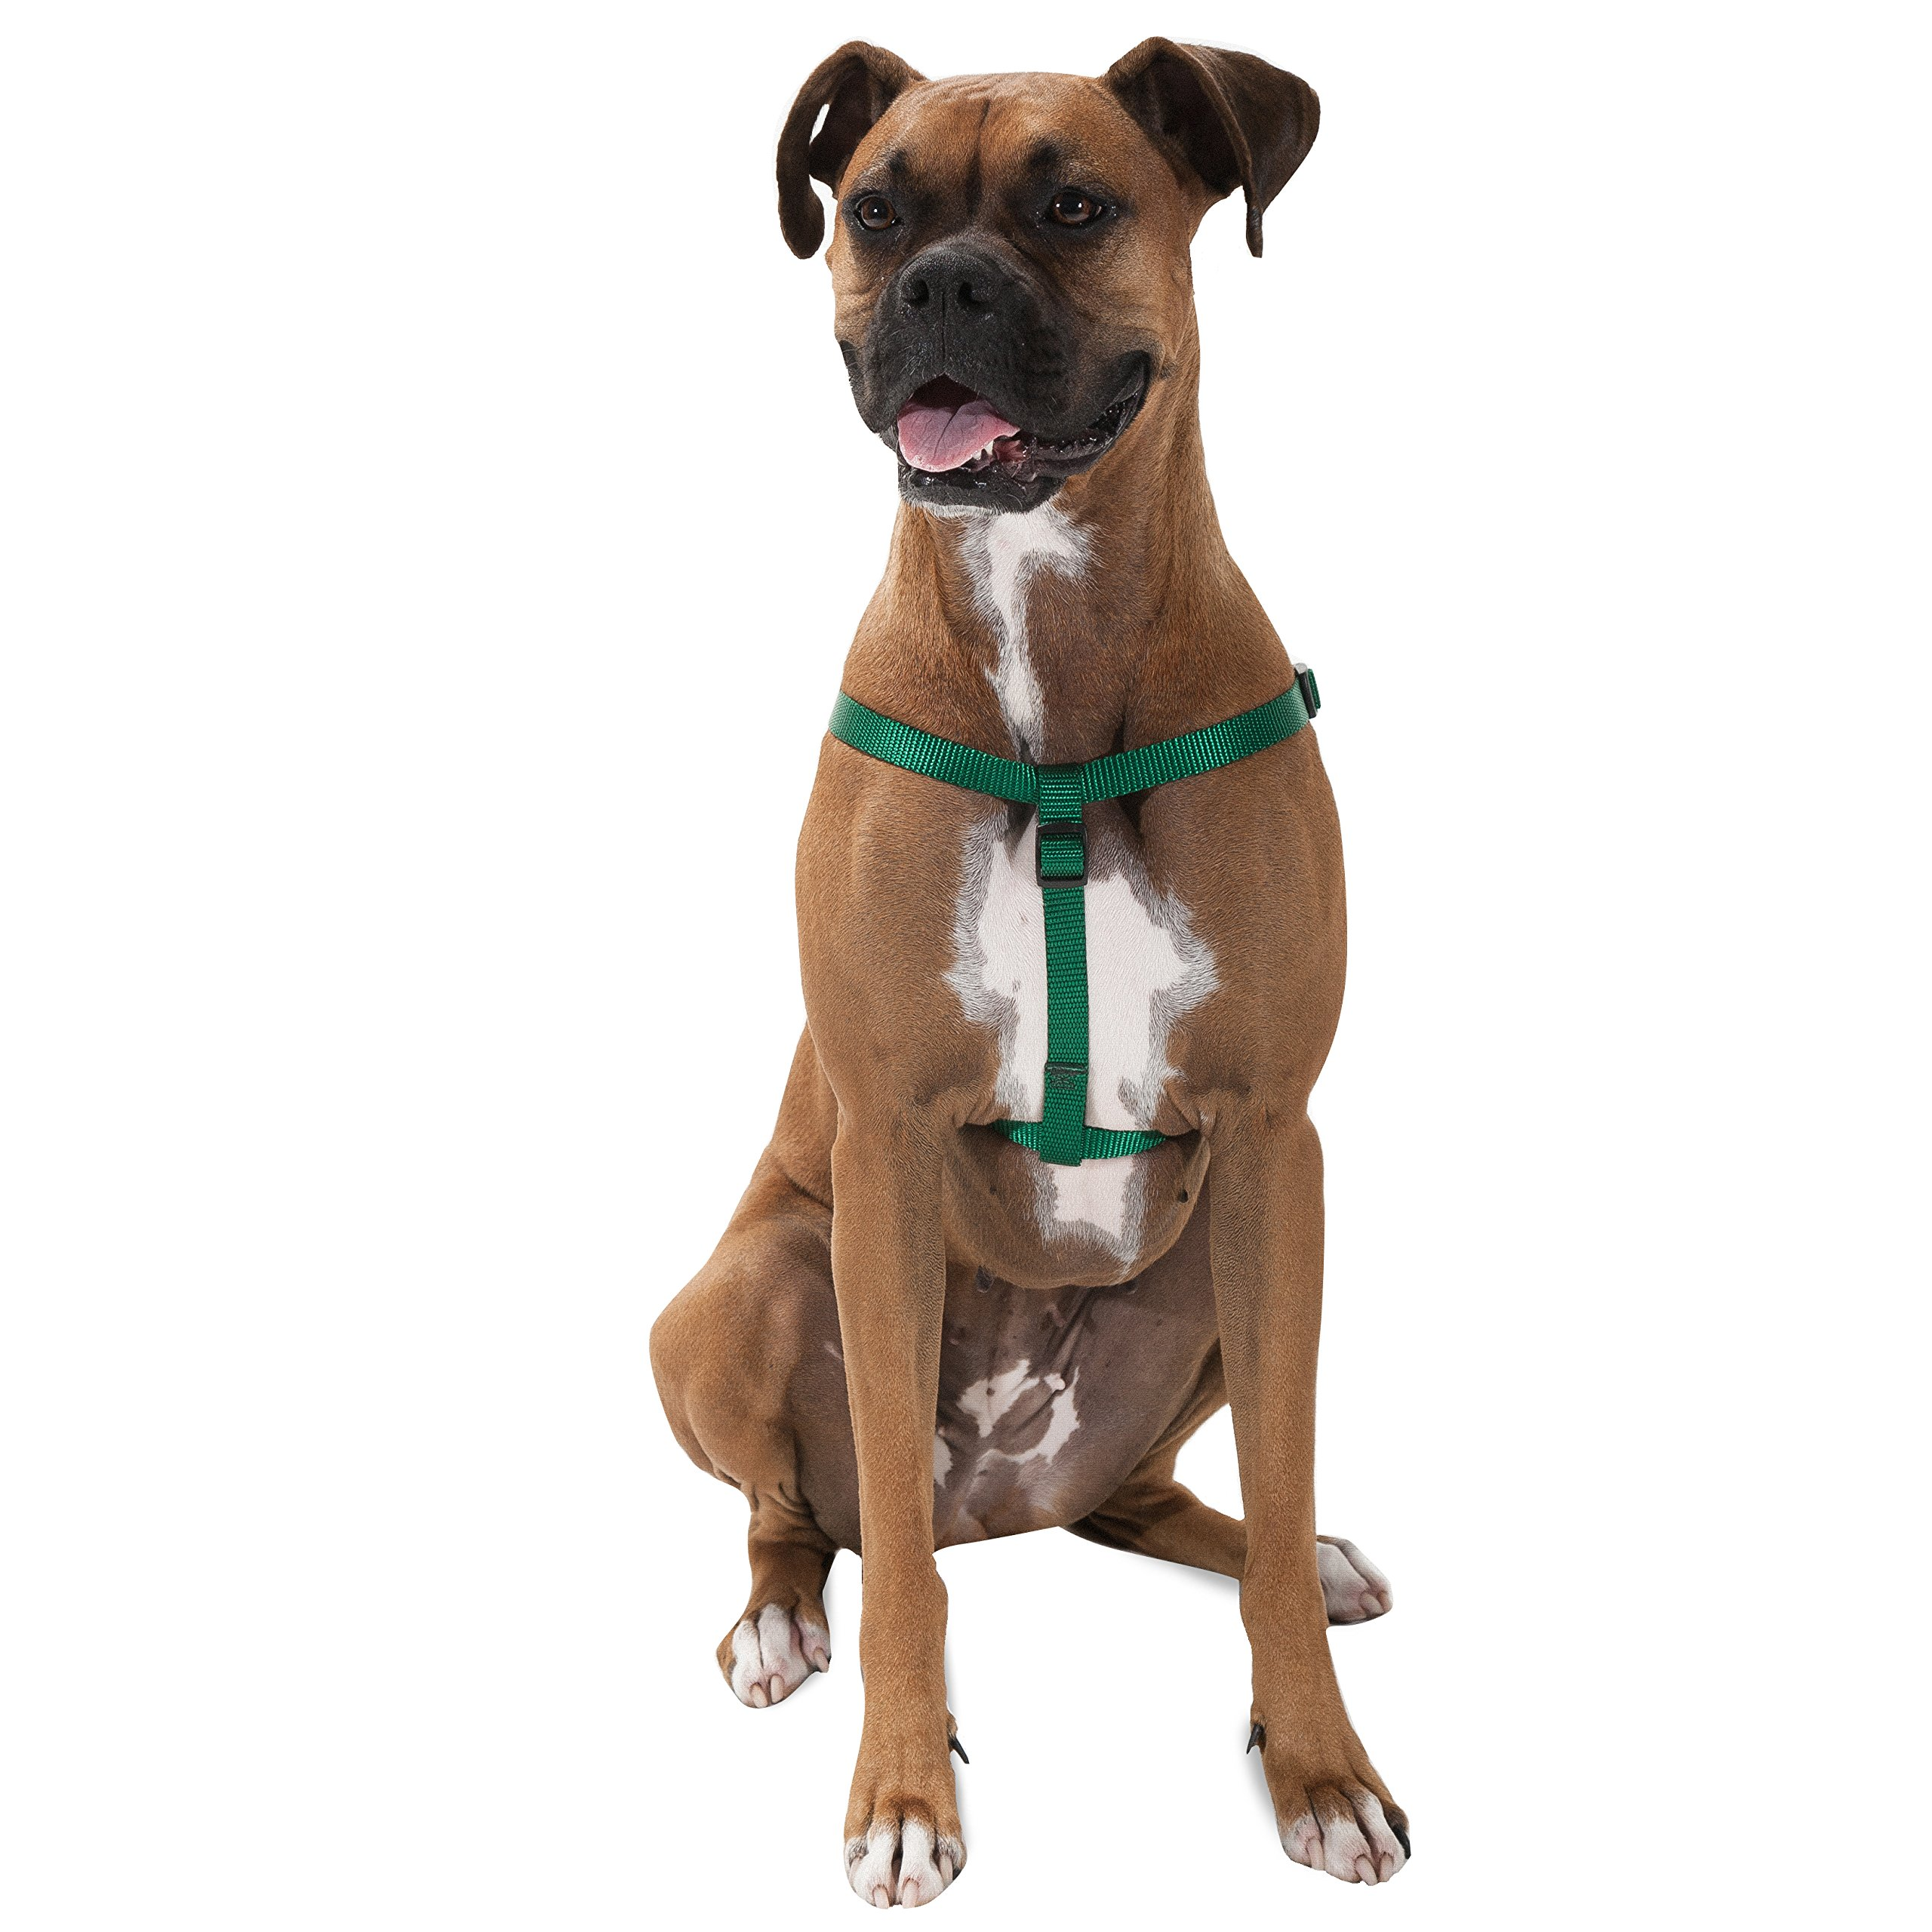 Majestic Pet Best Step In Dog Harness-Perfect For All Sized Dogs Small Medium & Large Heavy Duty Material- Adjustable For Training & Walking-25X40 Green by Majestic Pet (Image #1)